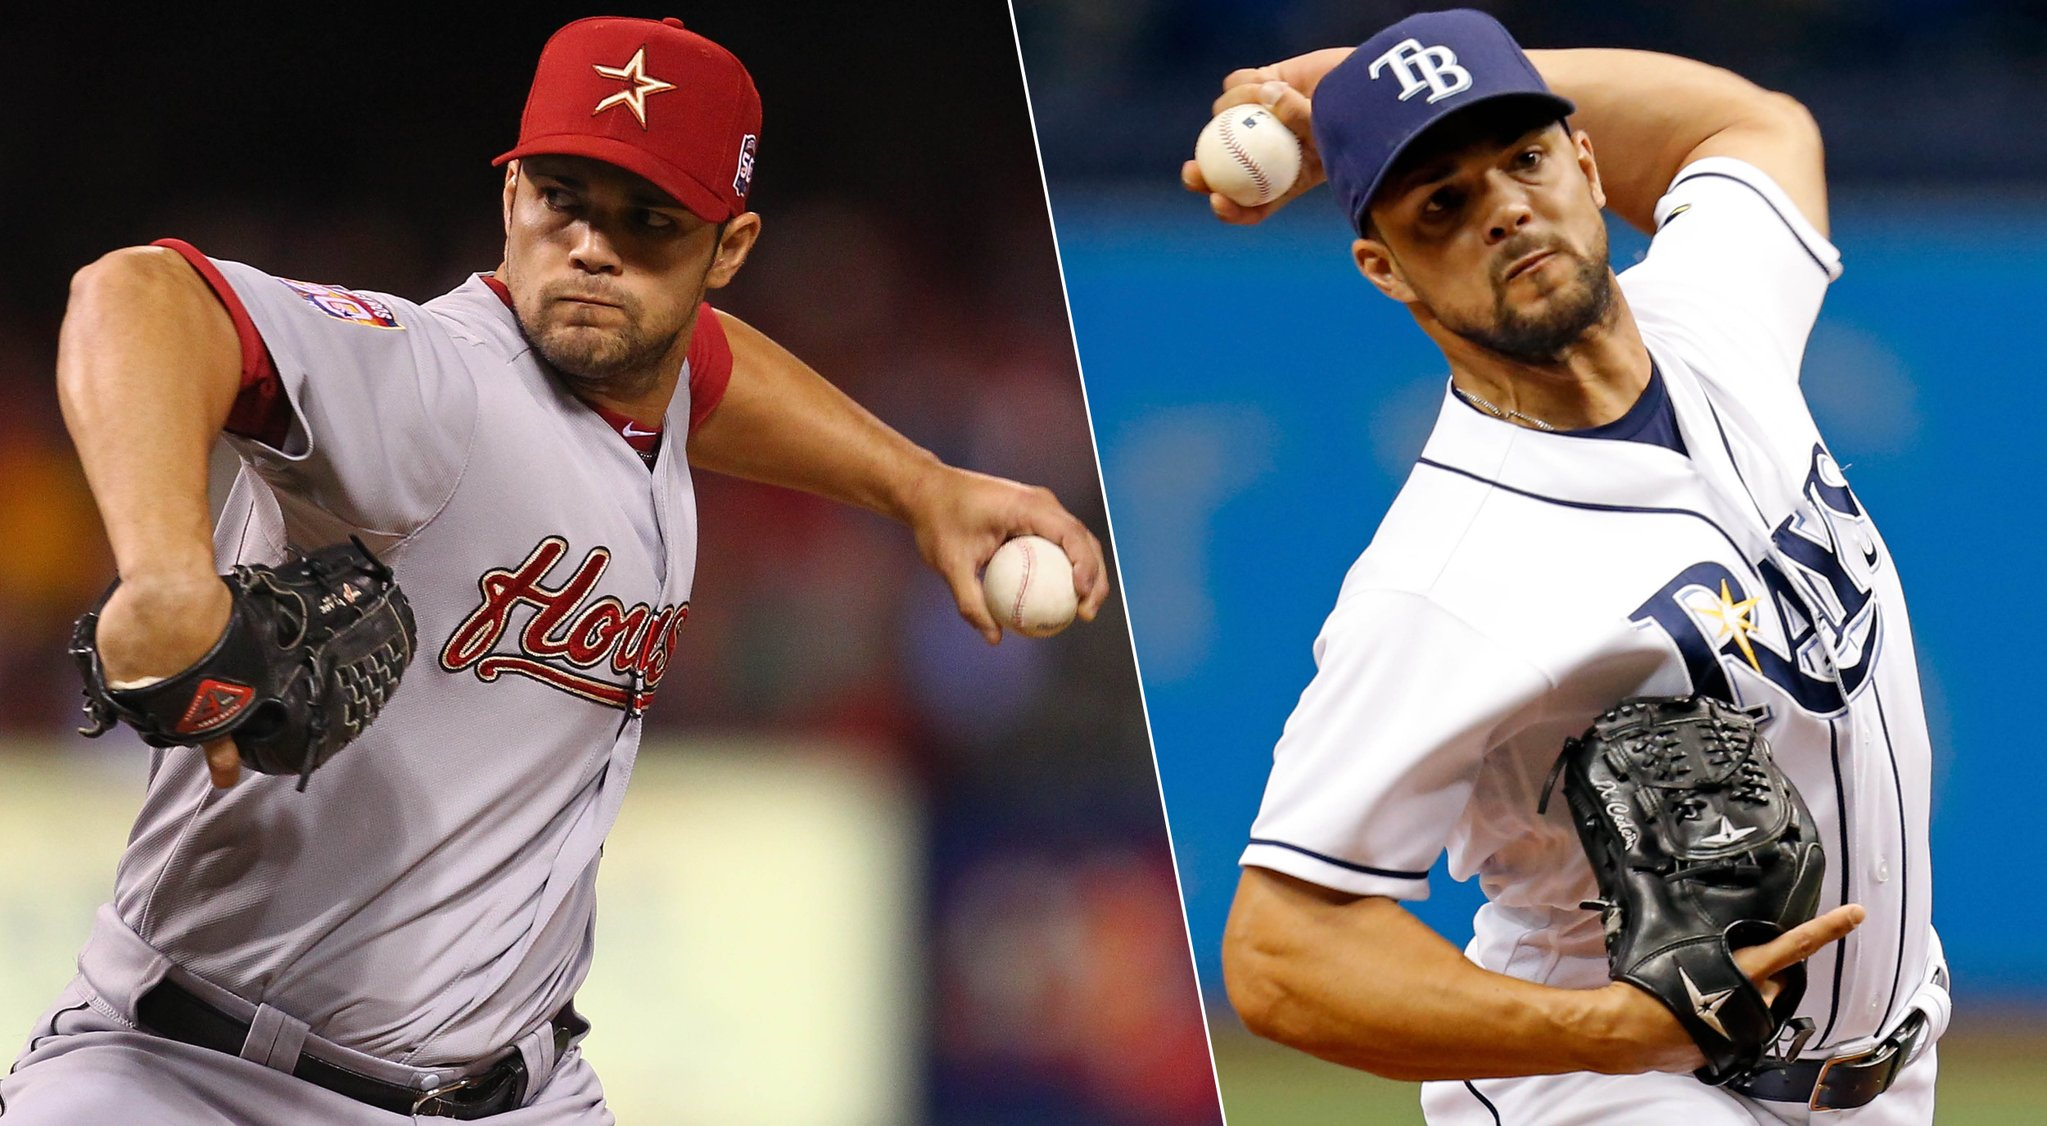 Xavier Cedeño (photographed) made his big league debut with the Houston Astros in 2011. (Photo Credit: Tampa Bay Rays)